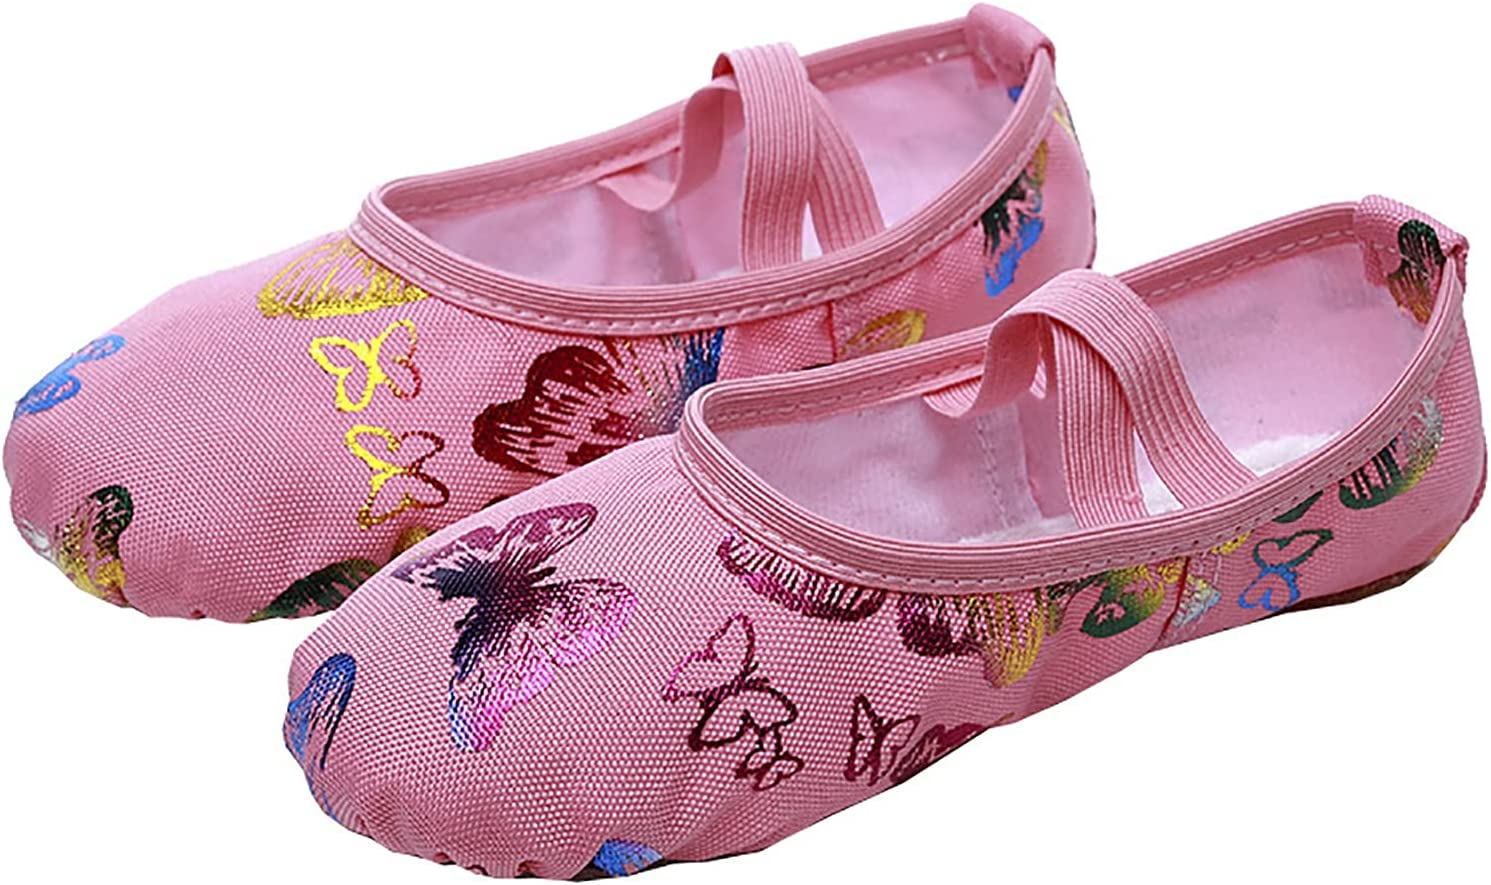 JIAYU Girls Ballet Shoes Dance Shoes Canvas Printing Ballet Slipper Split Leather Sole Yoga Gymnastic Shoes for Ladies (Color : Multi-Colored, Size : 29)